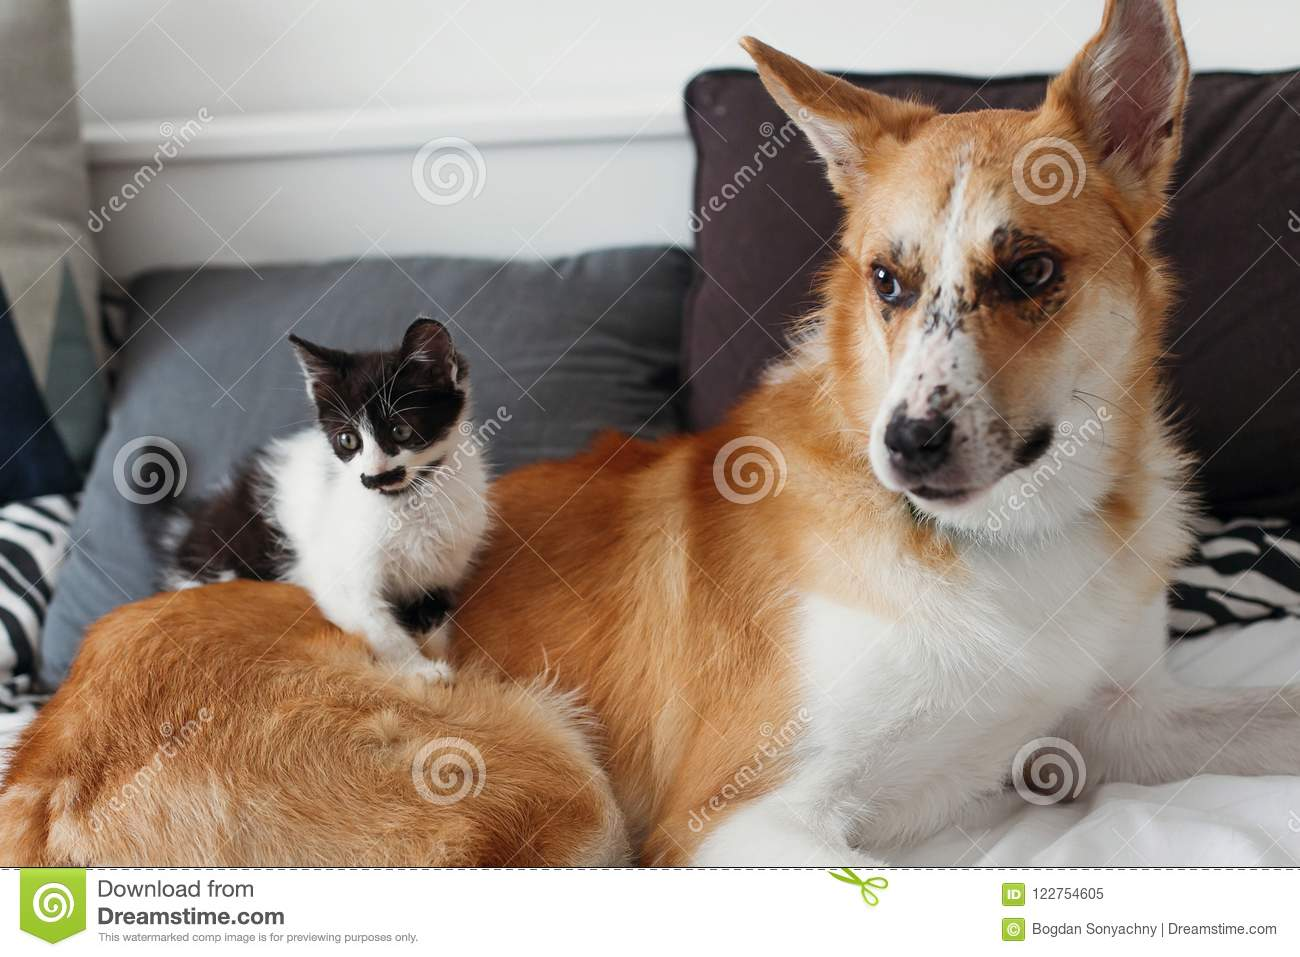 Cute kitty and golden dog playing on bed with pillows in stylish